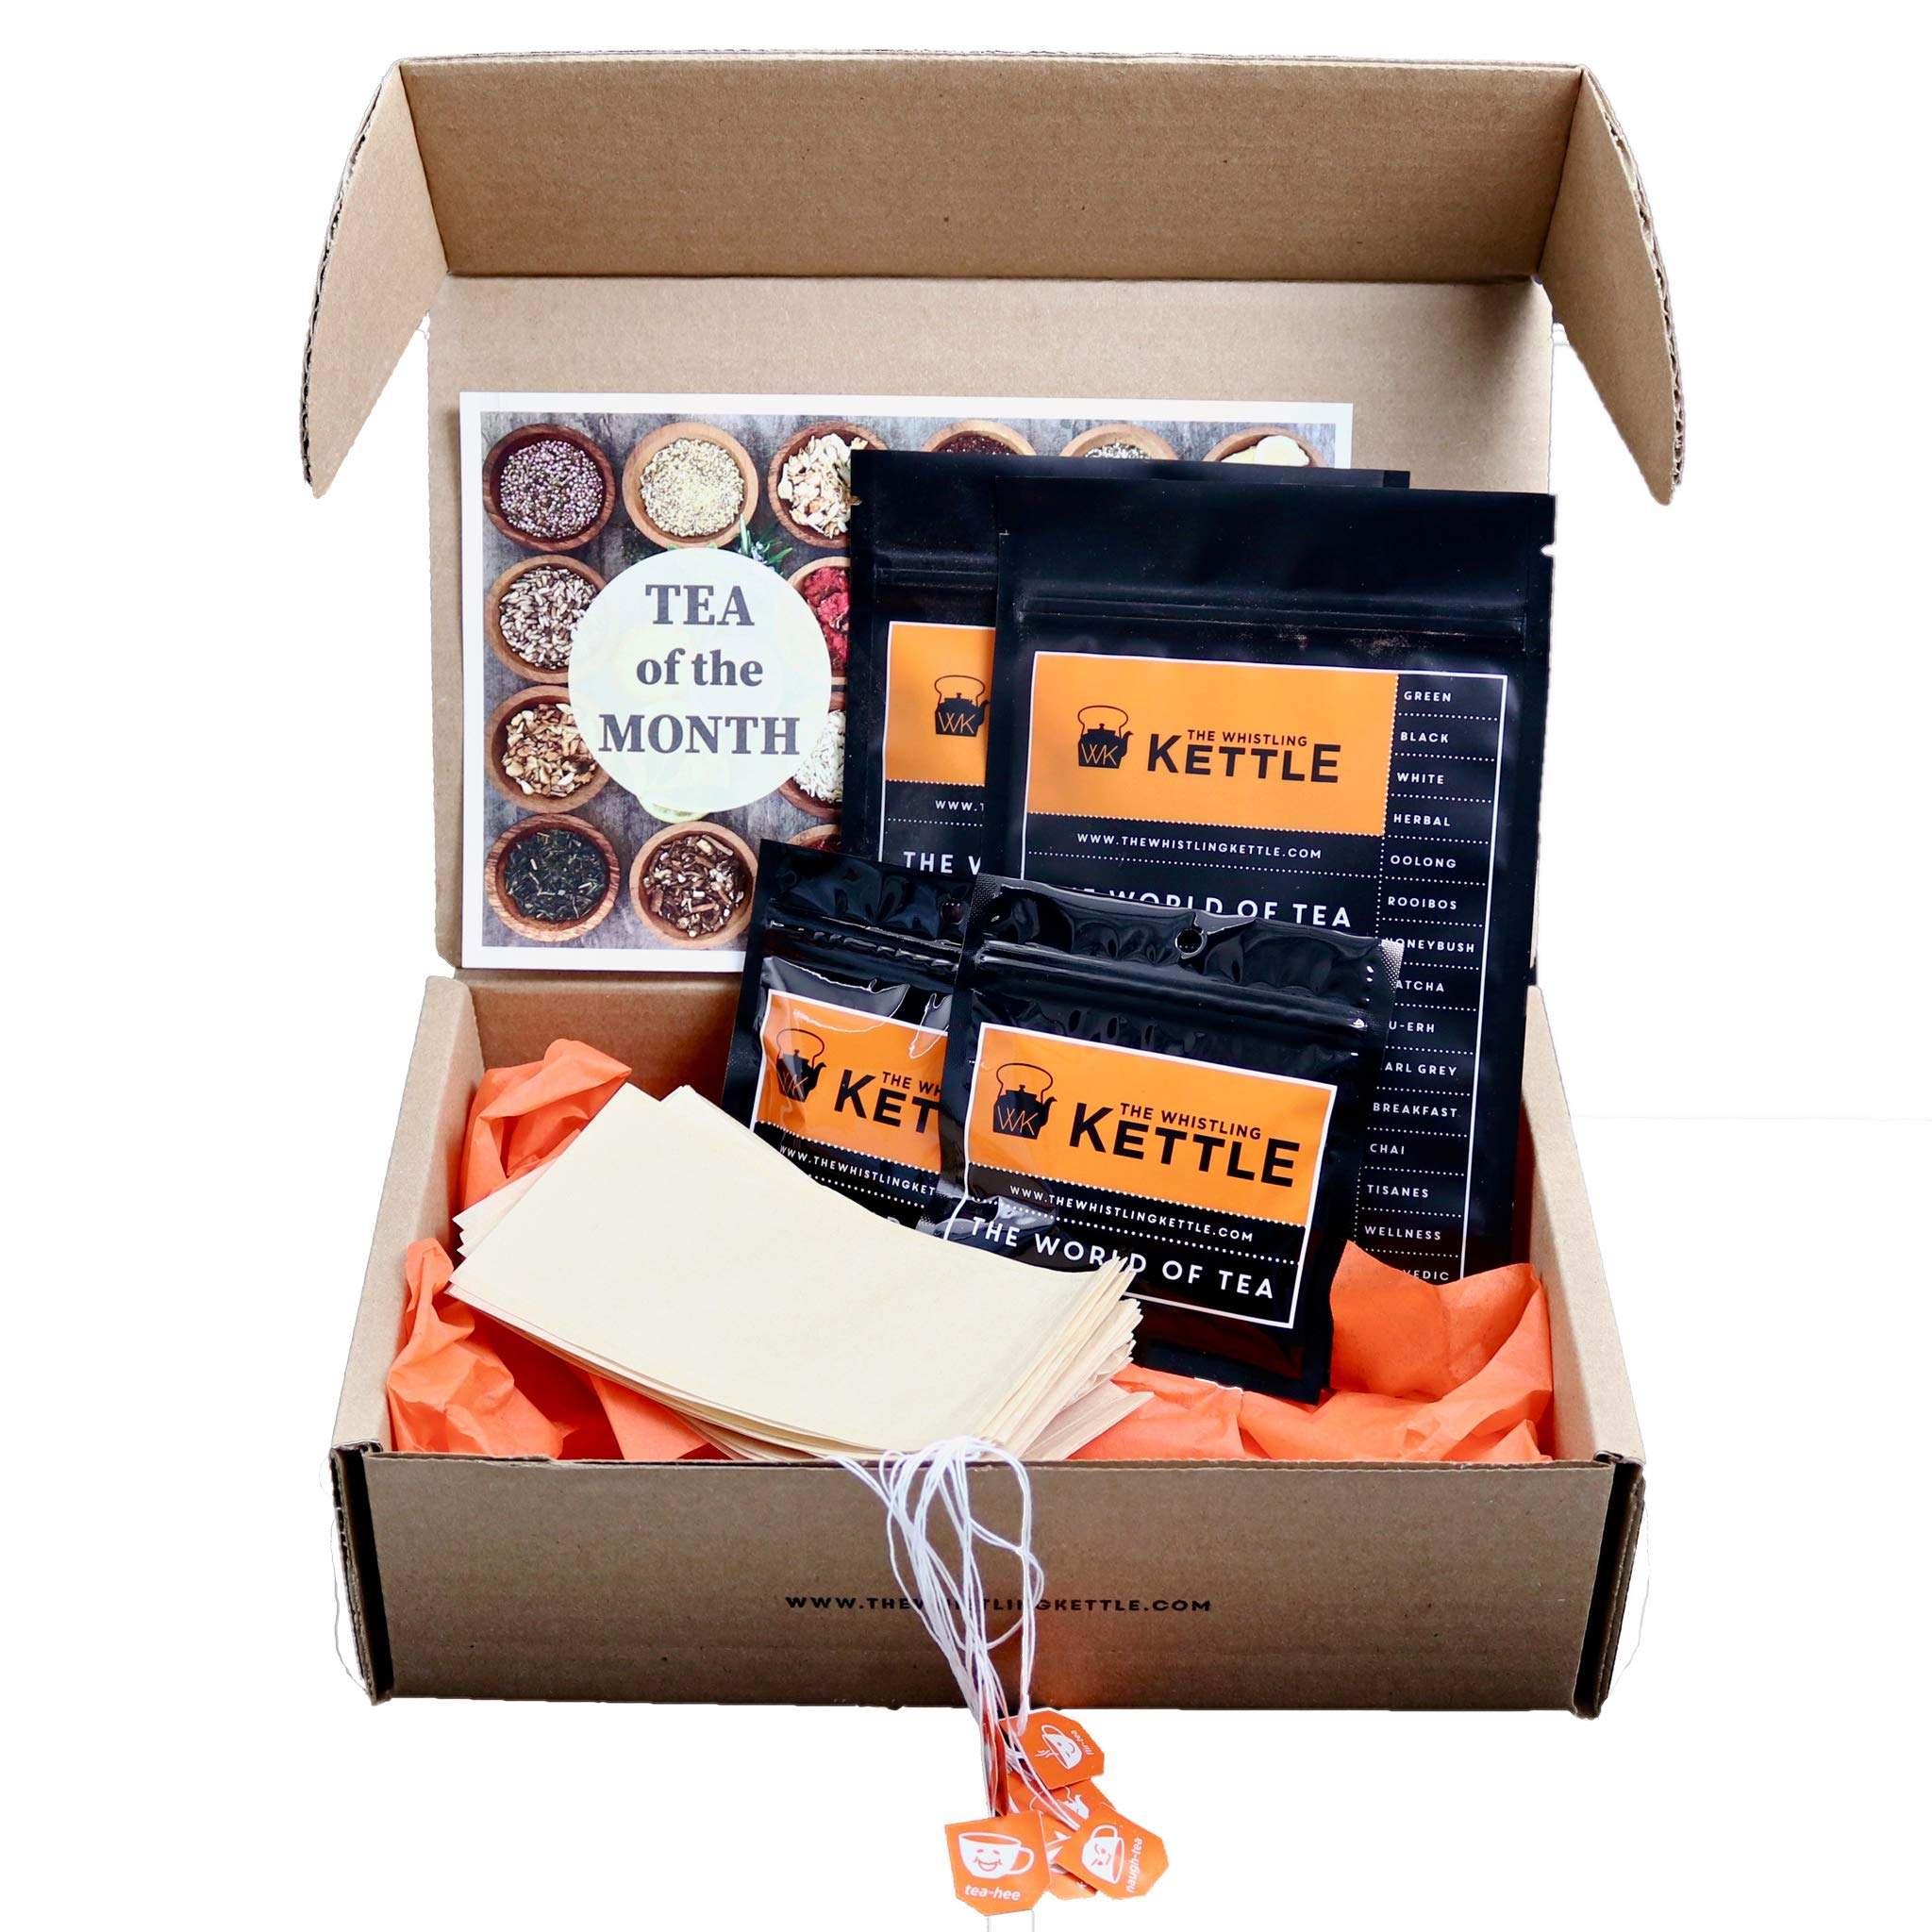 Adventure Edition - (6) Month Tea of the Month Club Subscription Box - Assorted Loose Leaf Teas - Tea Lover Gift Sampler Box by WK The Whistling Kettle (Image #2)